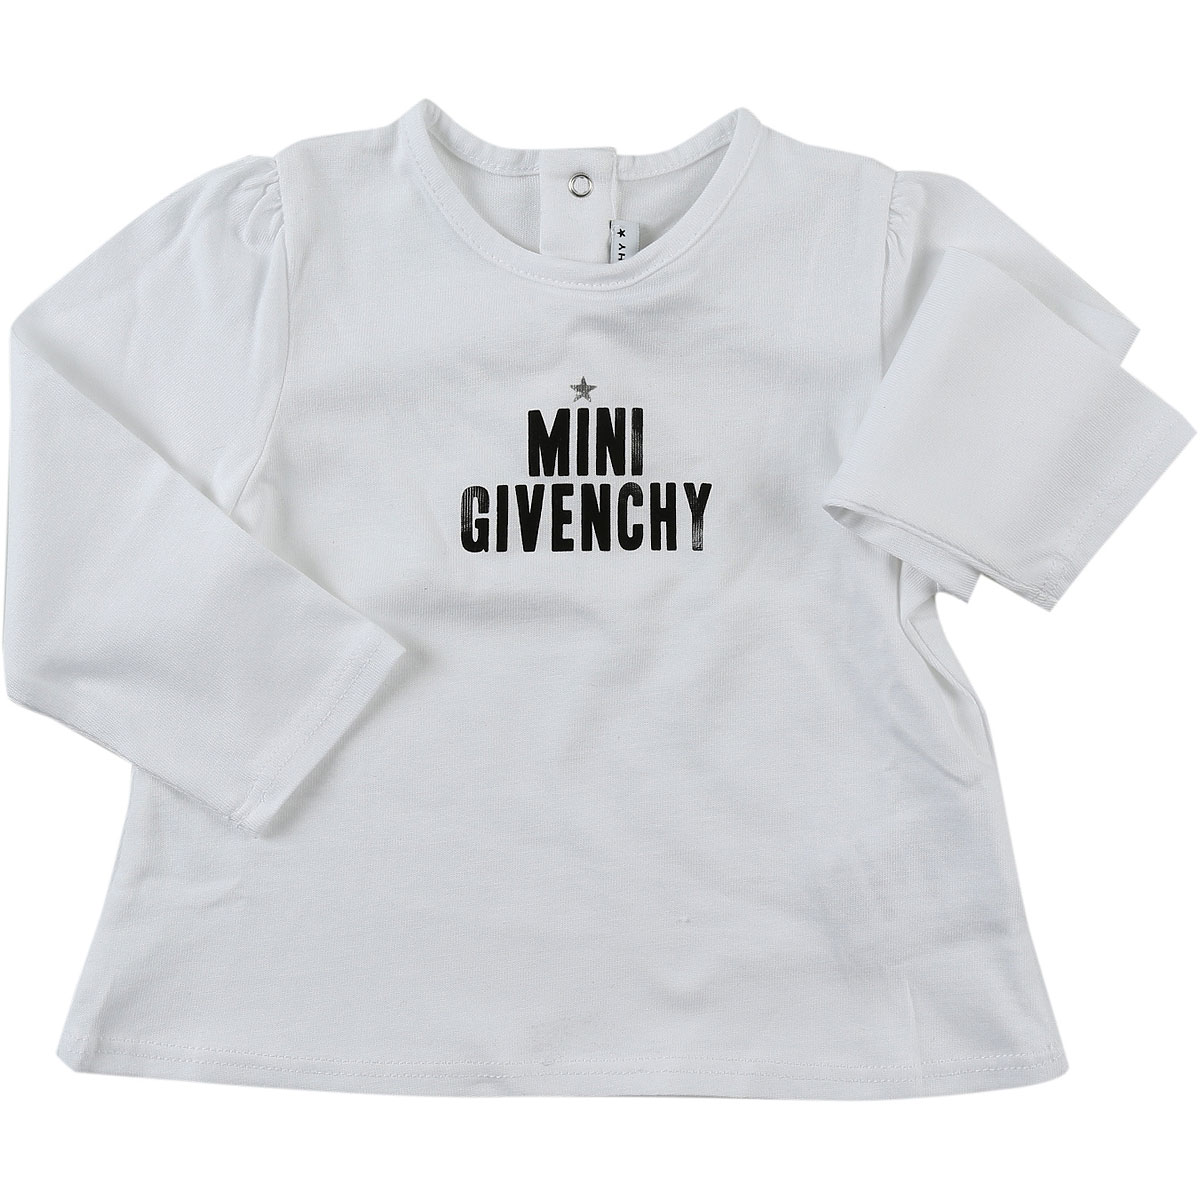 Image of Givenchy Baby T-Shirt for Girls, White, Cotton, 2017, 12M 18M 2Y 3Y 6M 9M